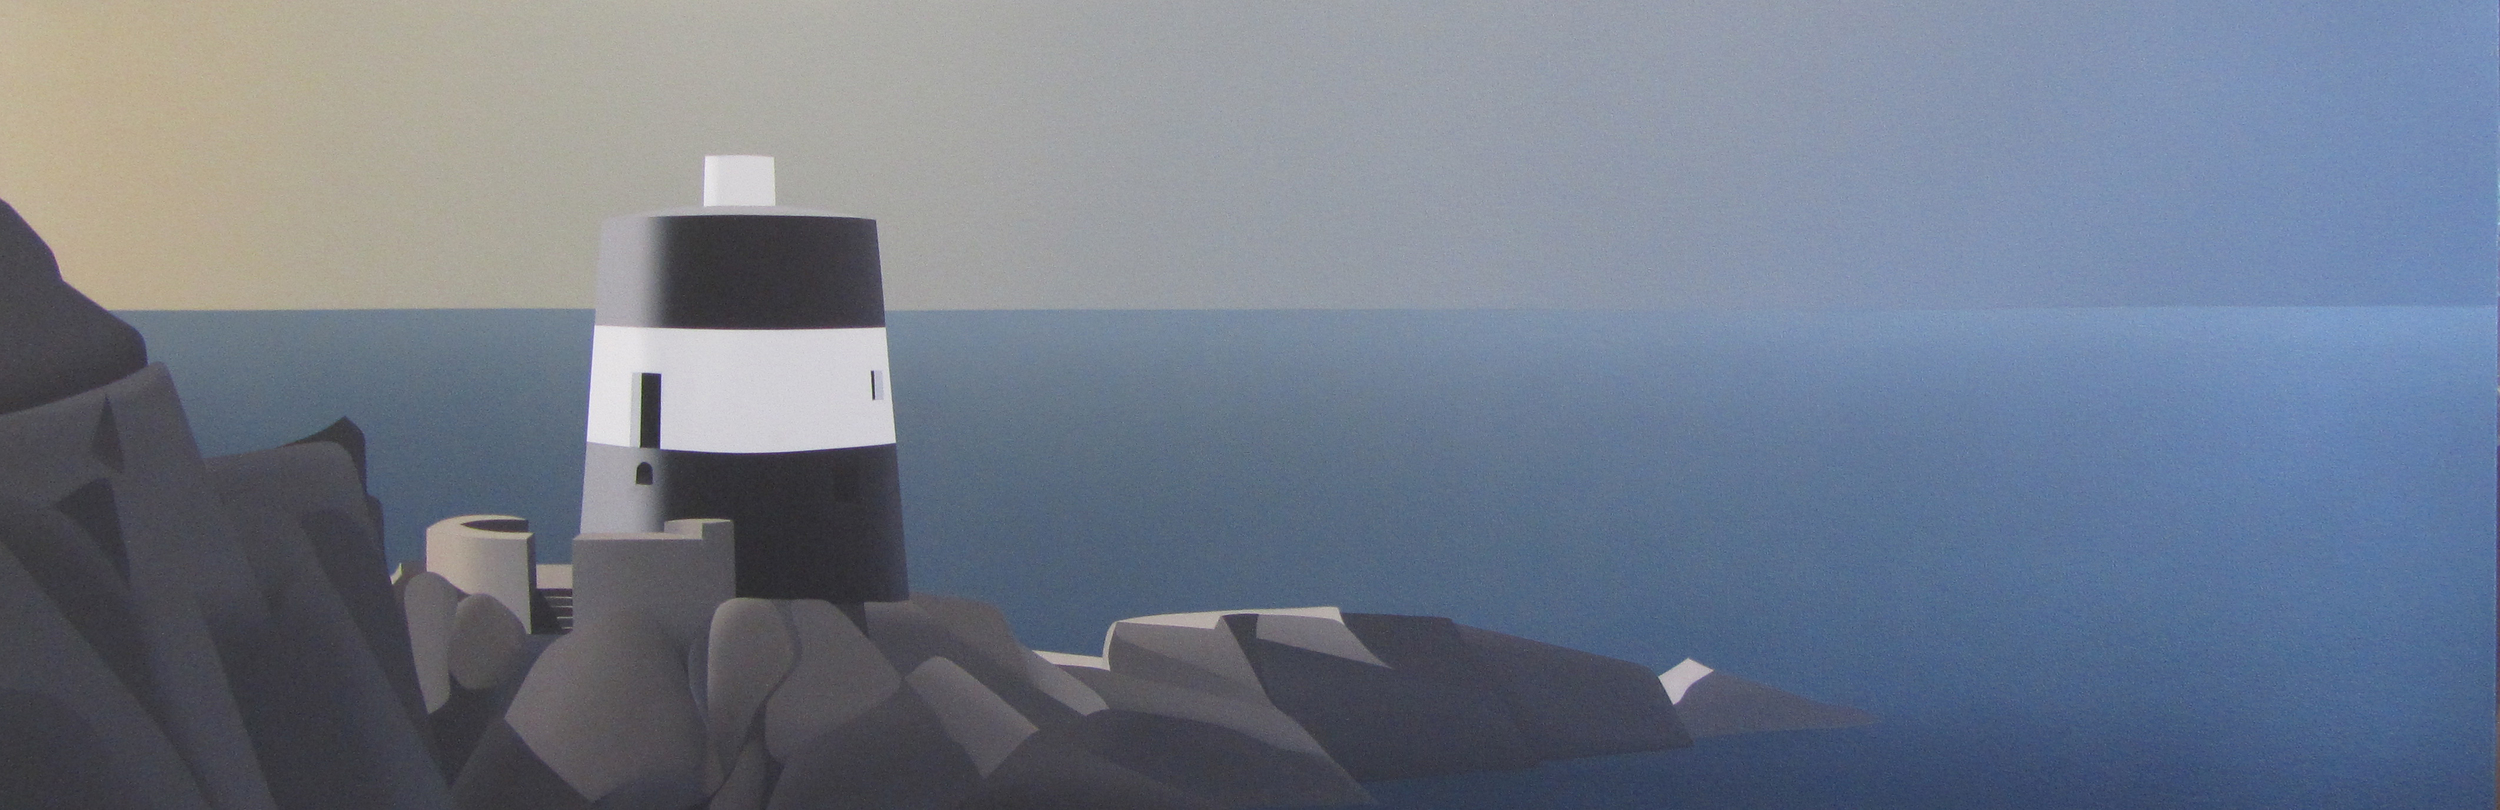 Noirmont Tower by Ian Paterson